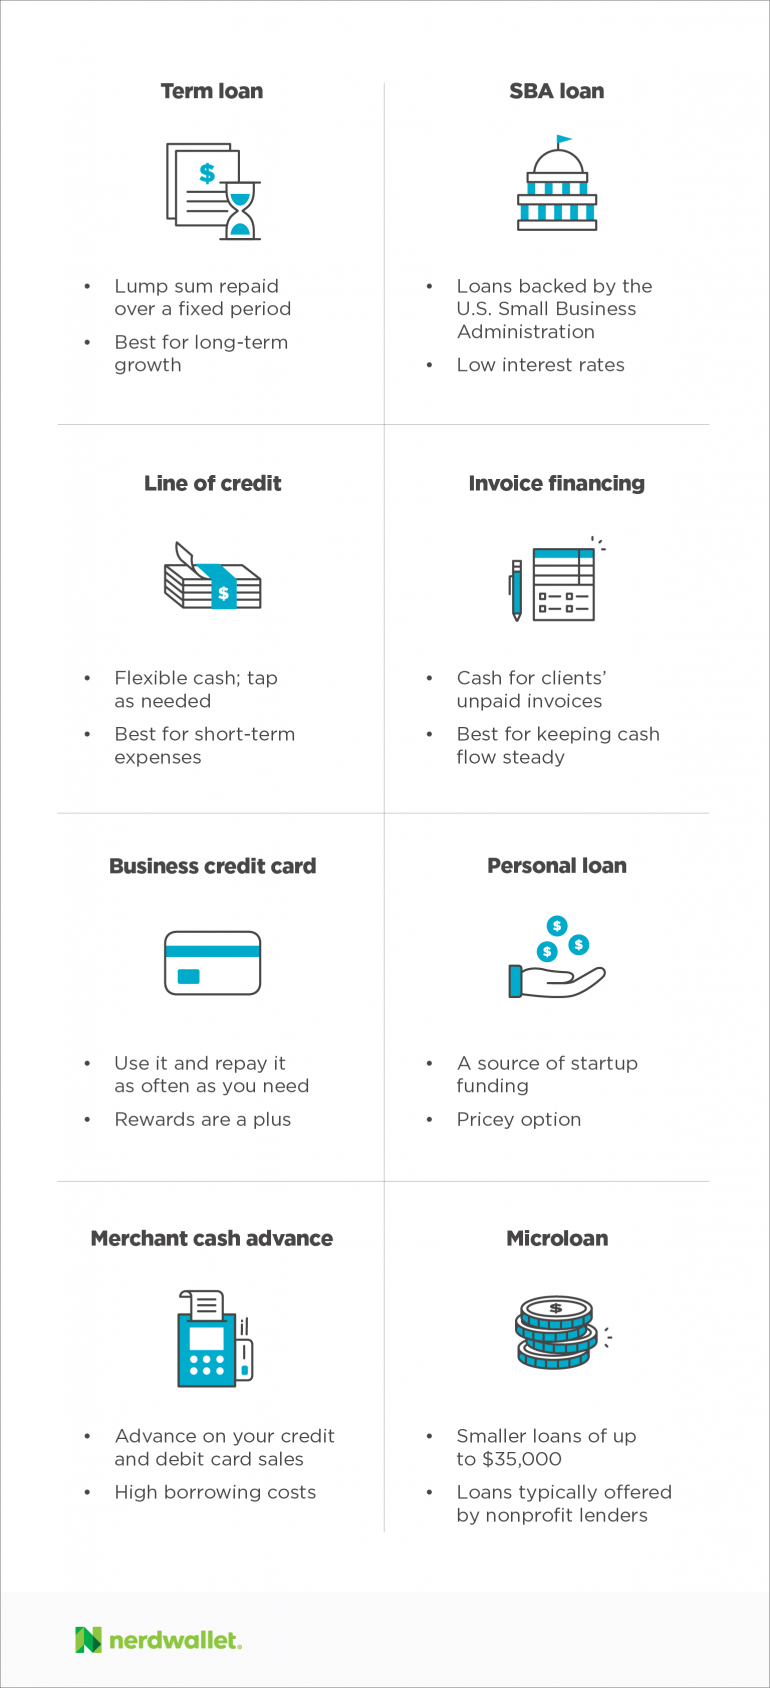 How To Get A Small Business Loan In 5 Steps Nerdwallet